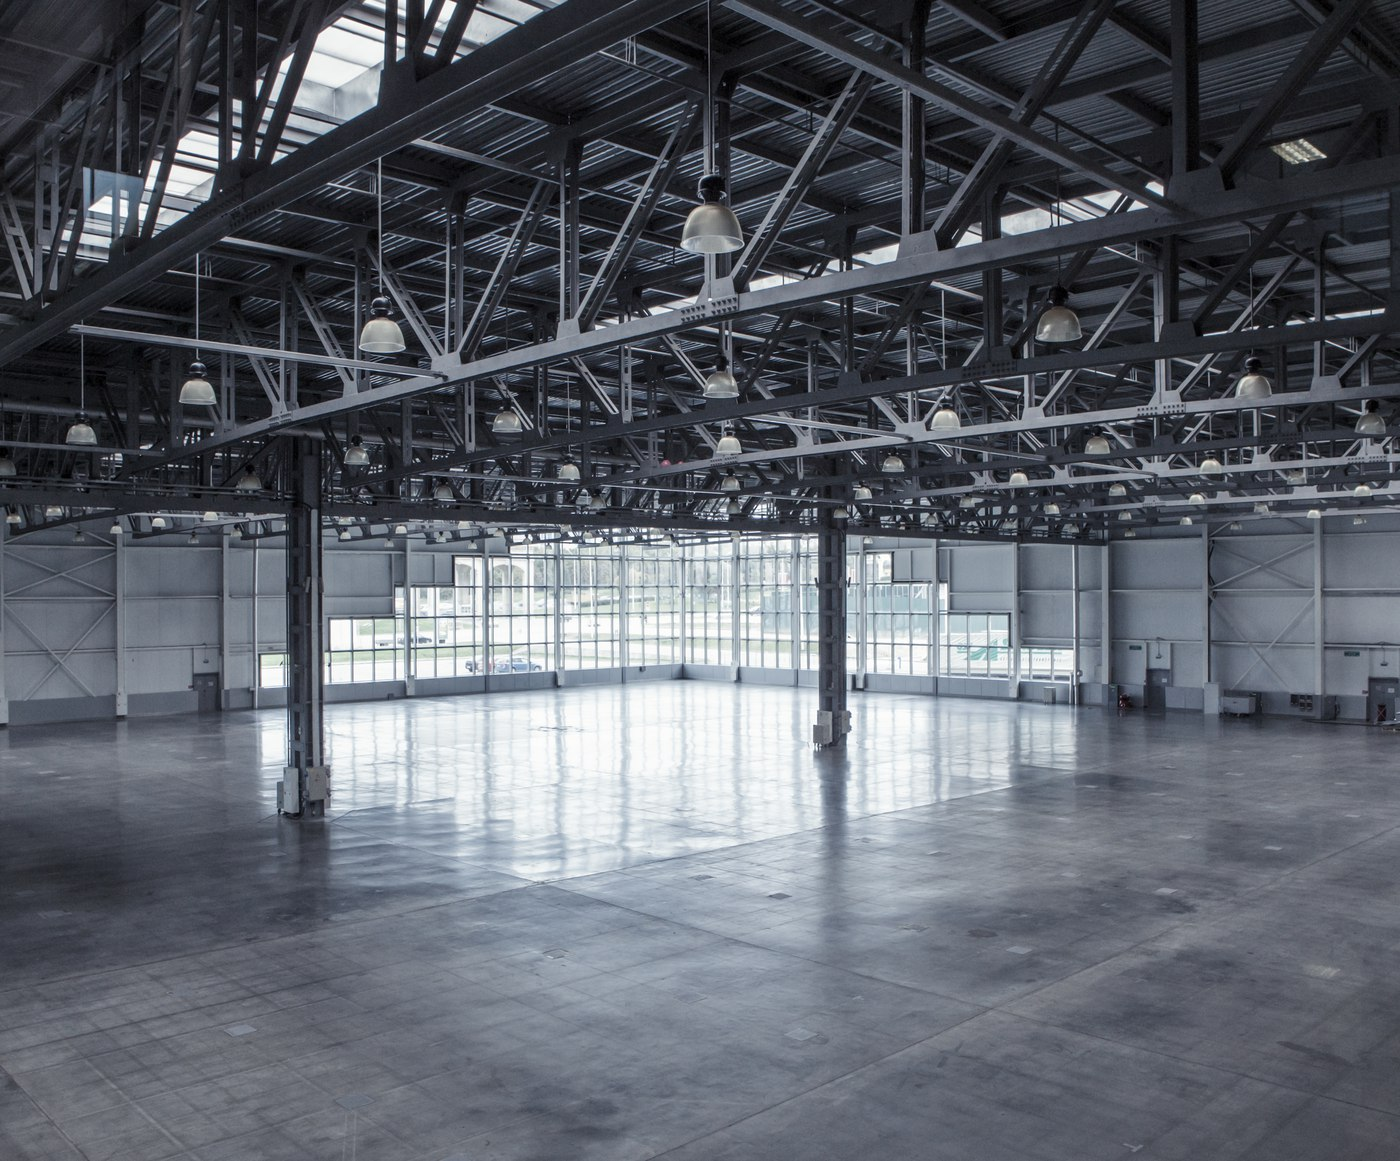 Commercial Floors 101: How to Care for Concrete and Cement Floors